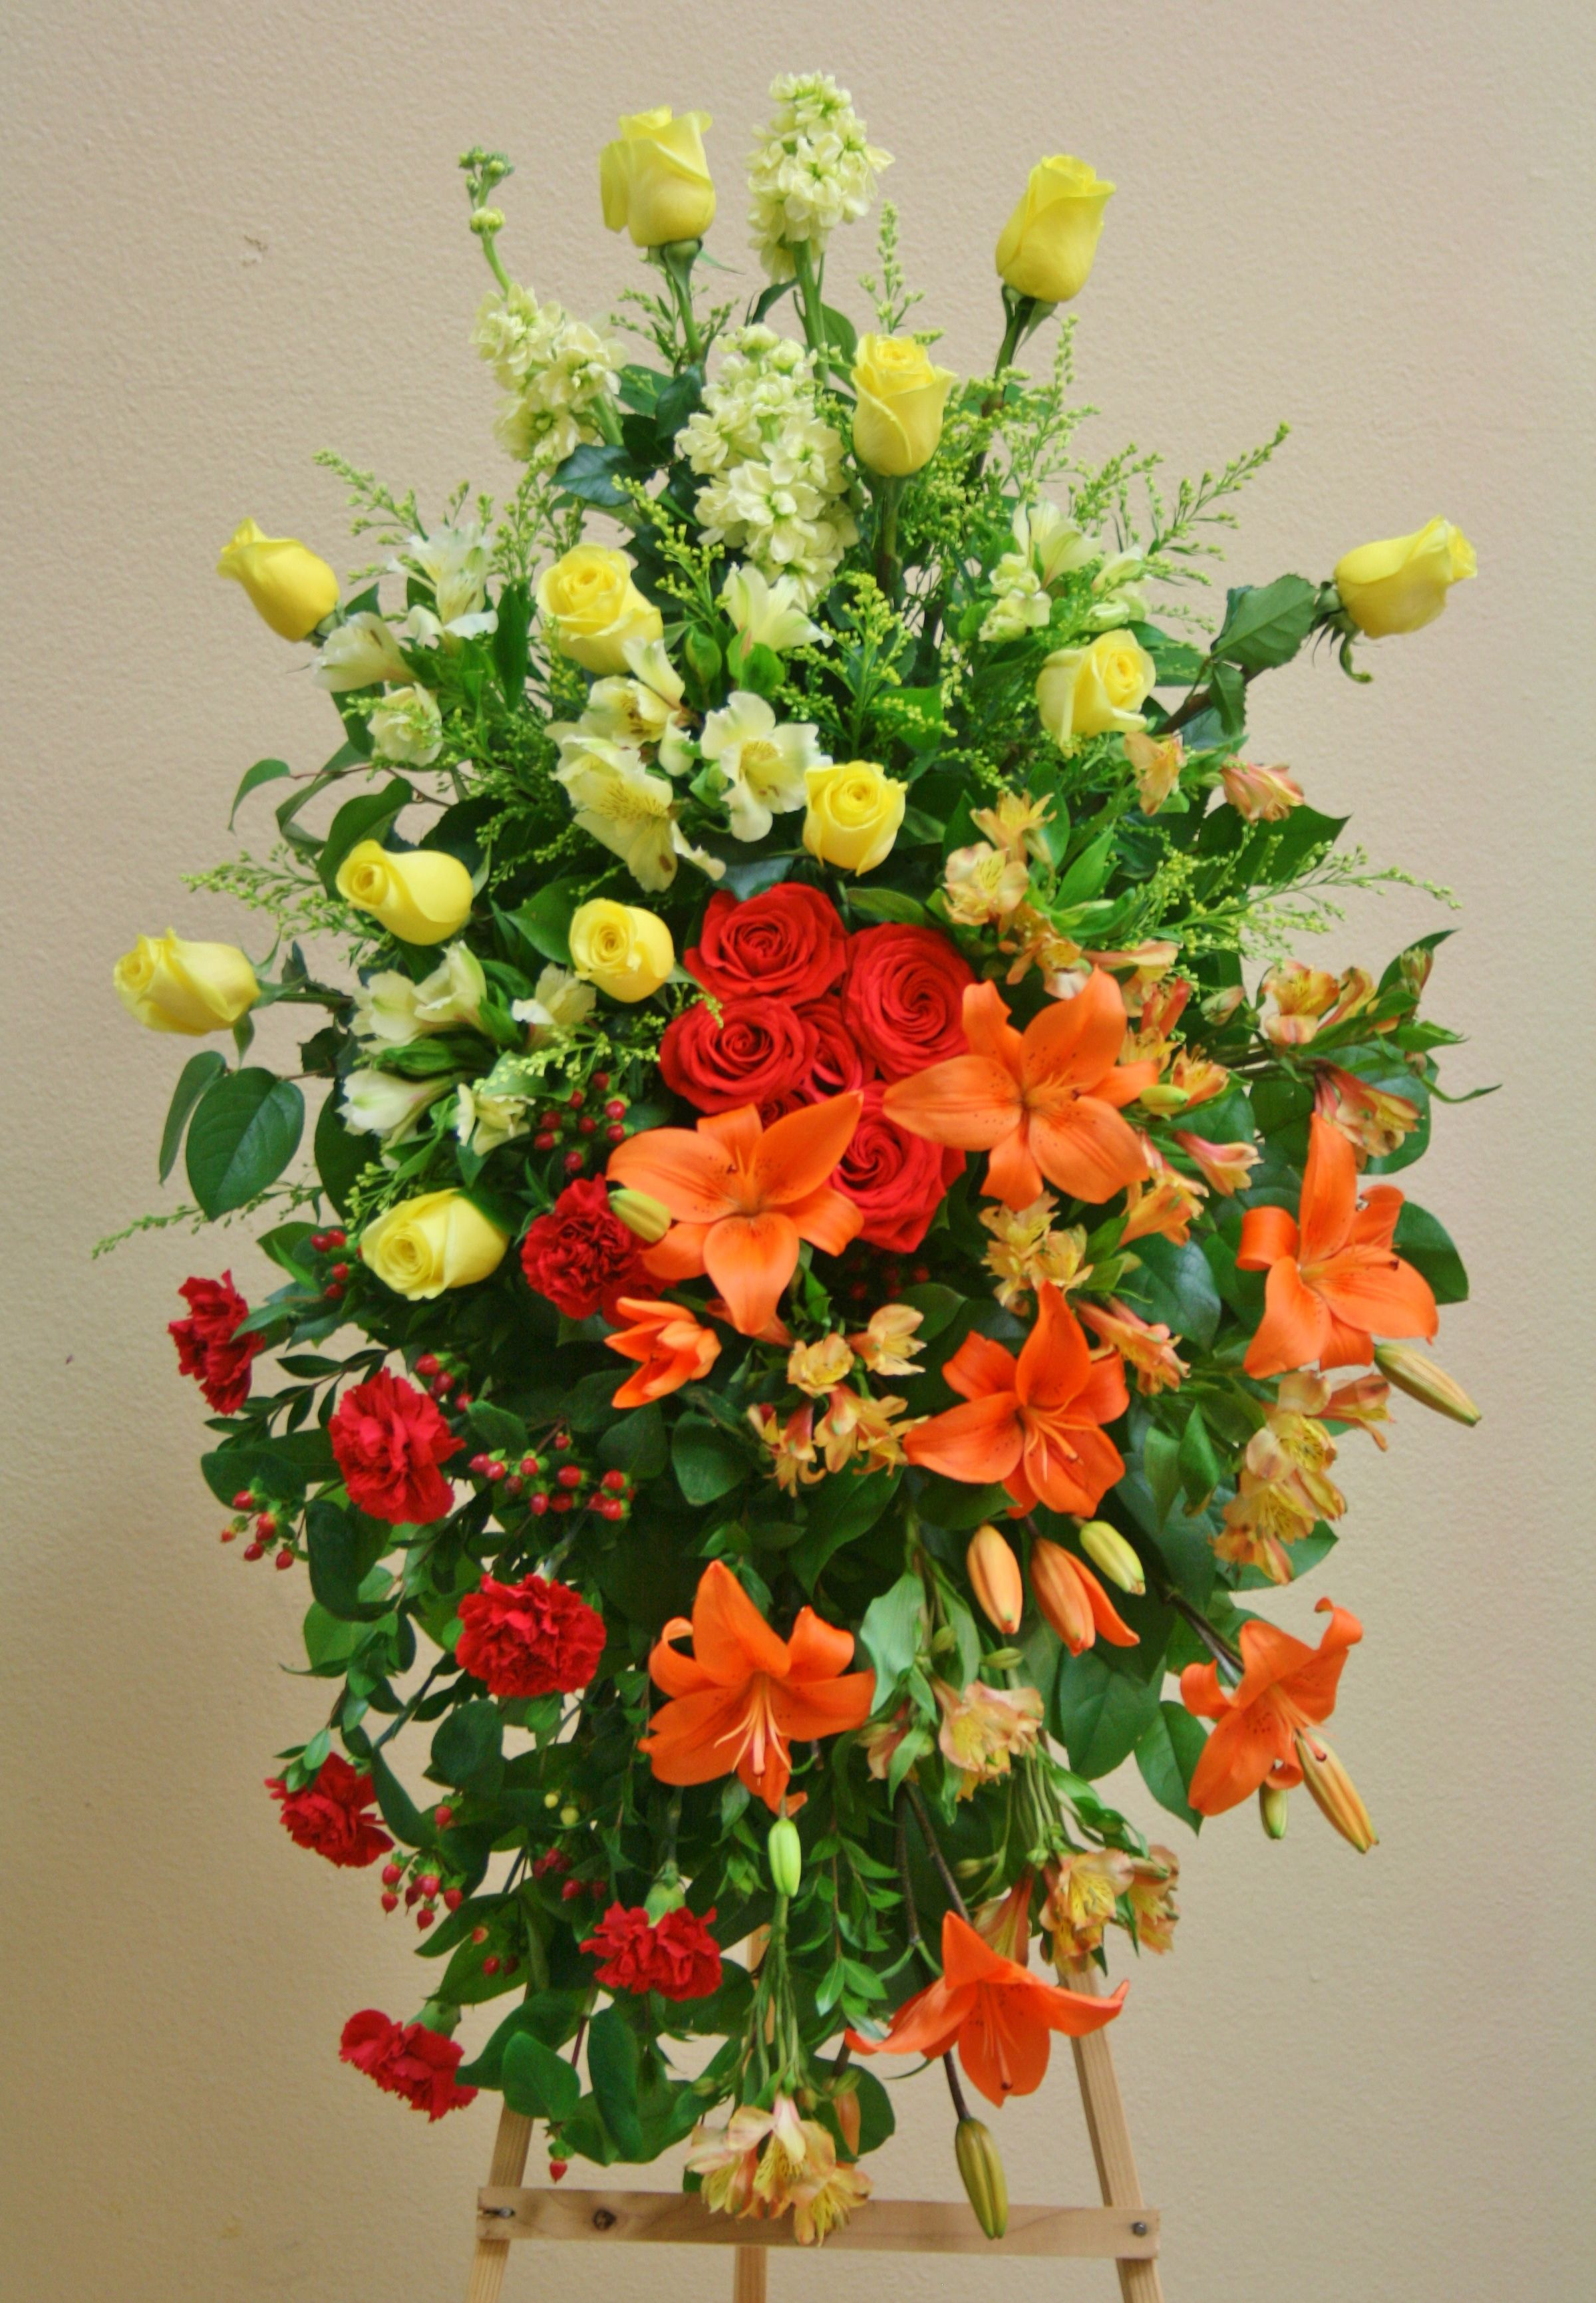 An Arrangement Of Flowers In Yellow, Orange And Red Includes